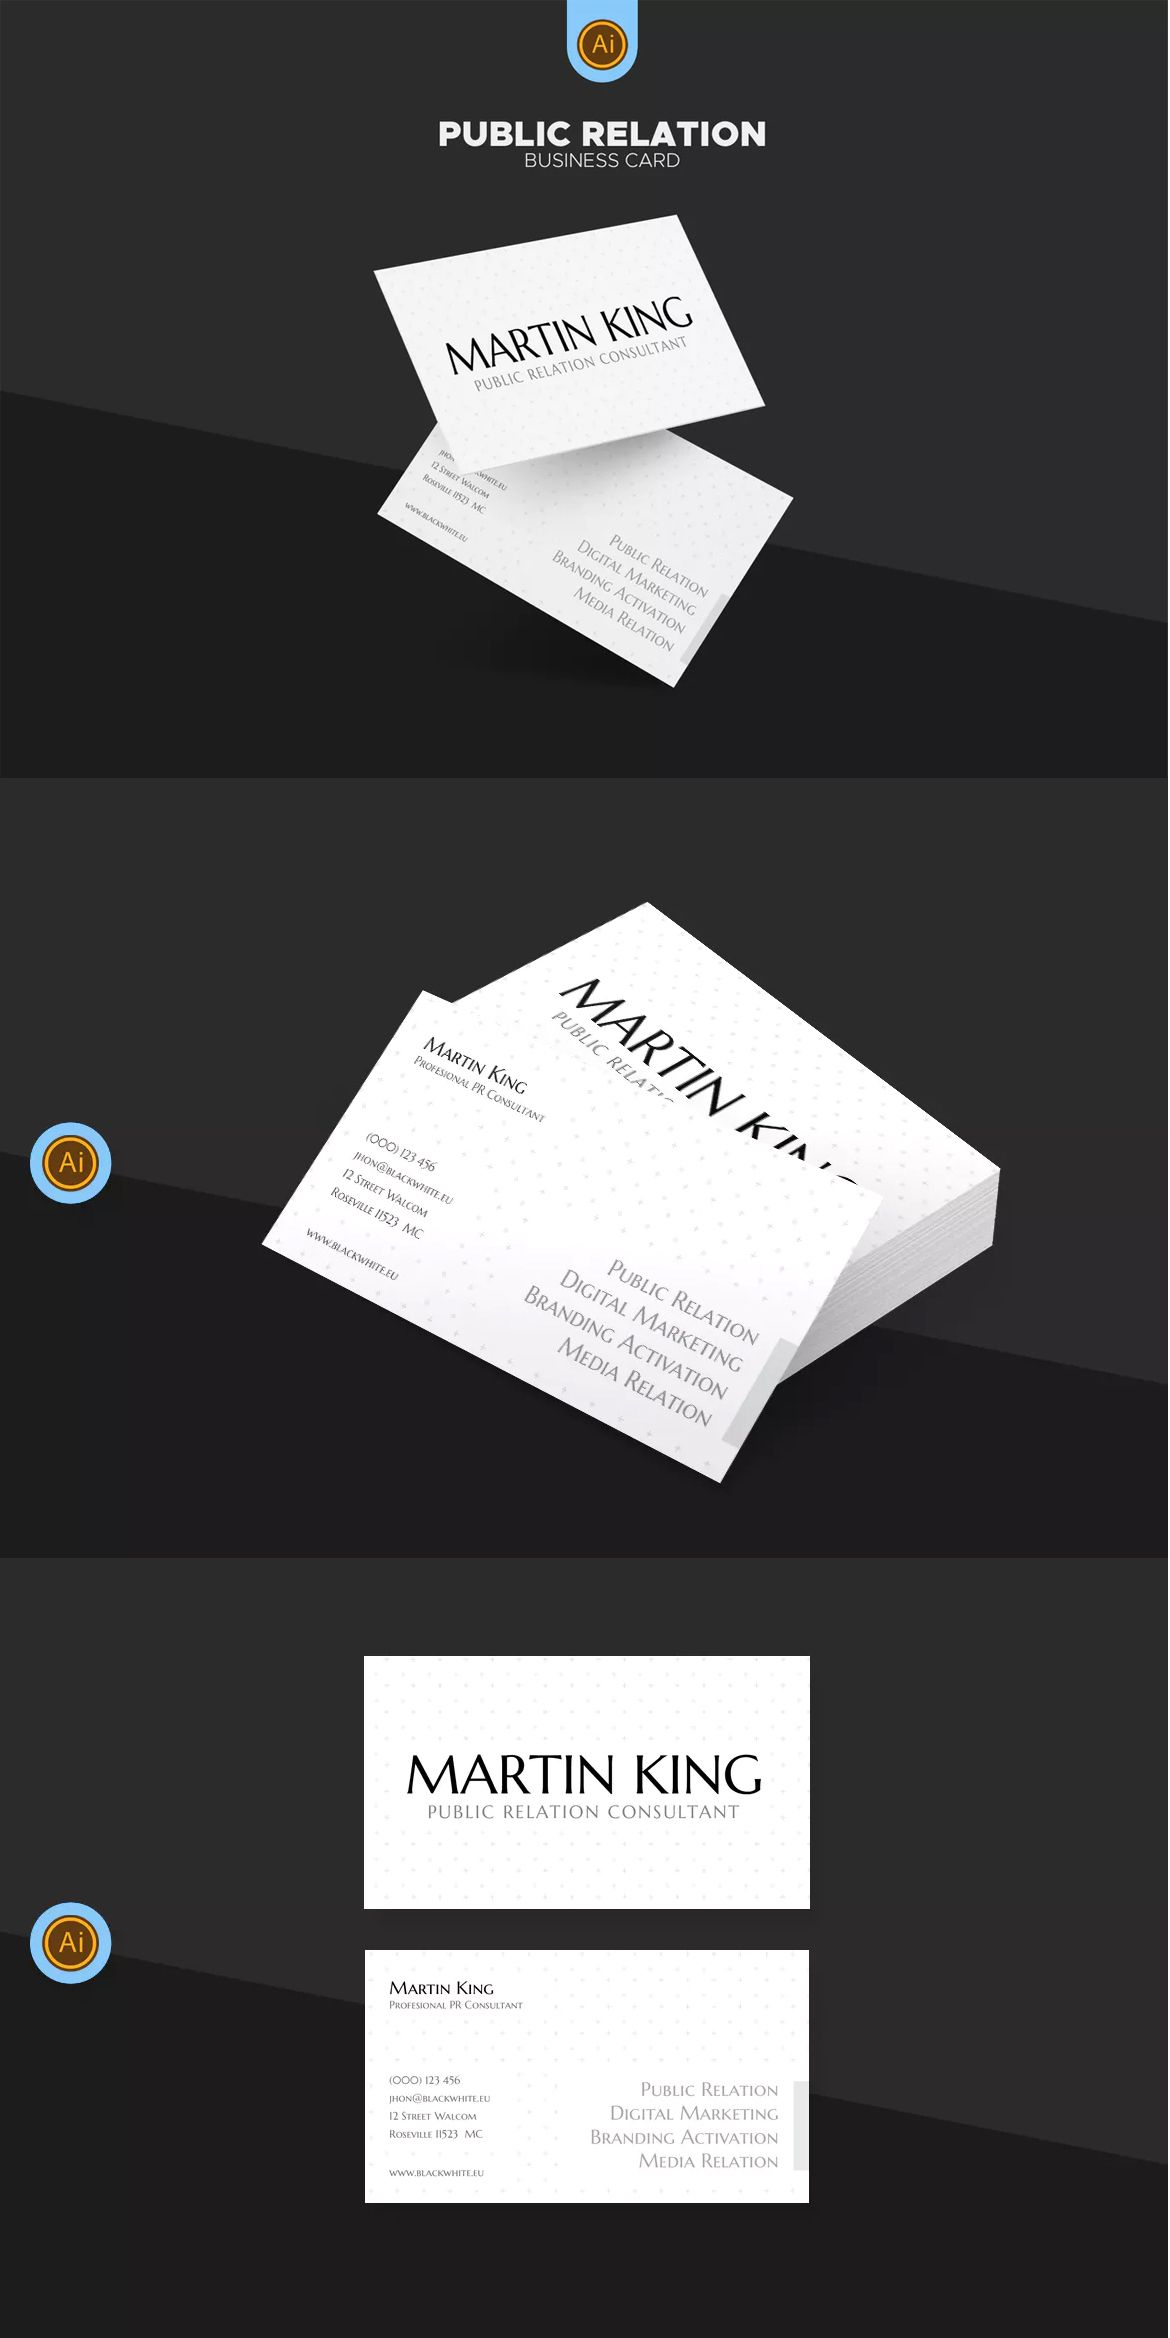 PR Marketing Business Card Template AI  EPS  unlimiteddownloads     PR Marketing Business Card Template AI  EPS  unlimiteddownloads